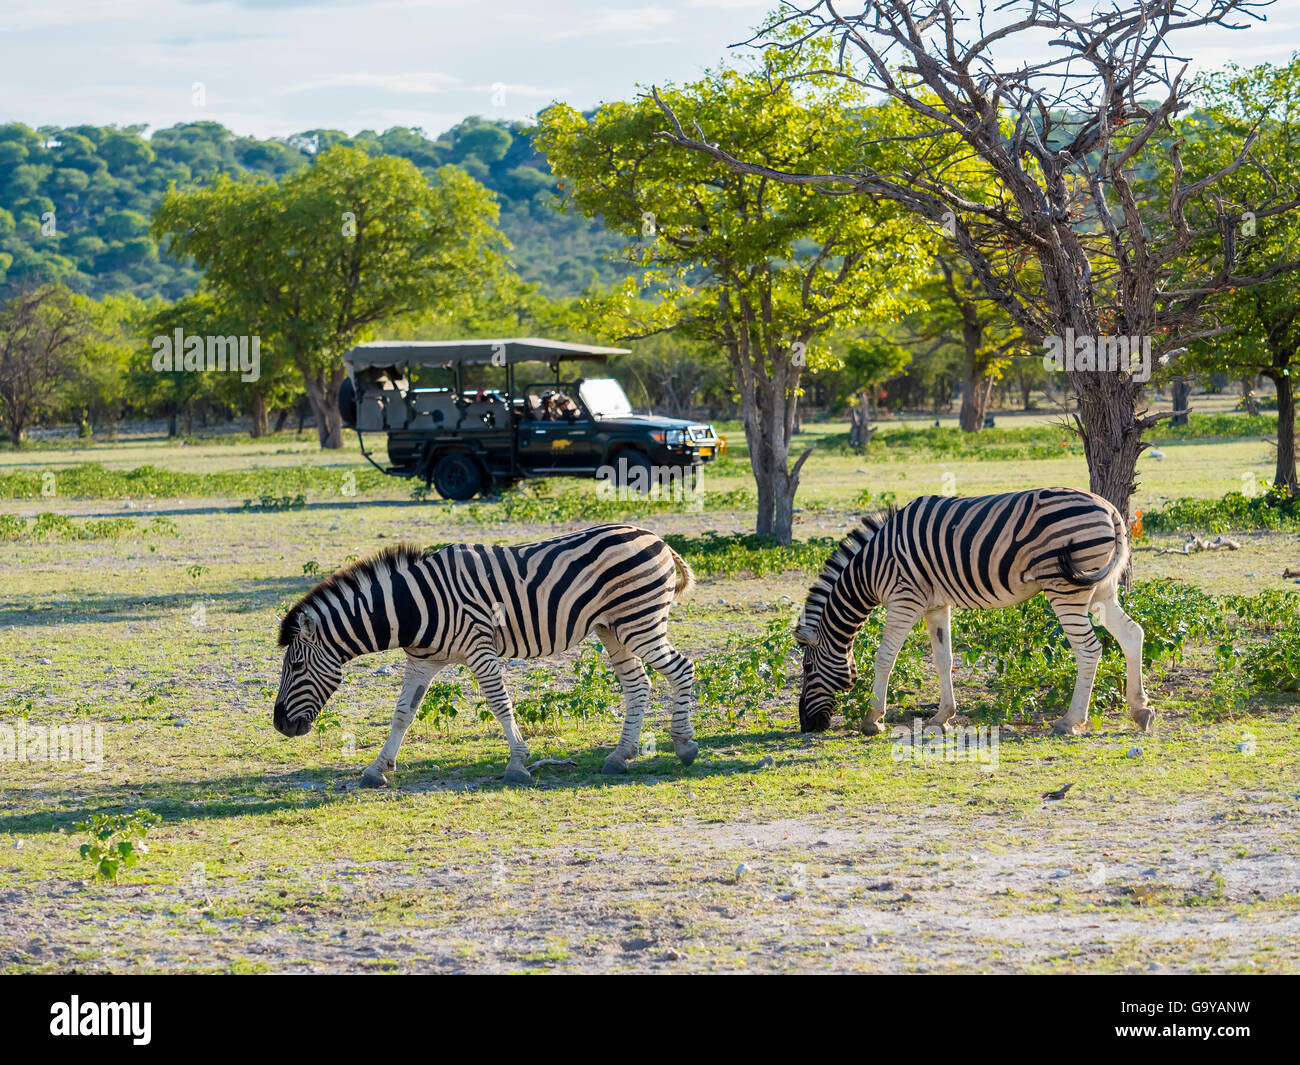 Burchell's Zebras (Equus burchelli) grazing, rear safari jeep with tourists, Ongaya Game Reserve, Outja, Namibia - Stock Image